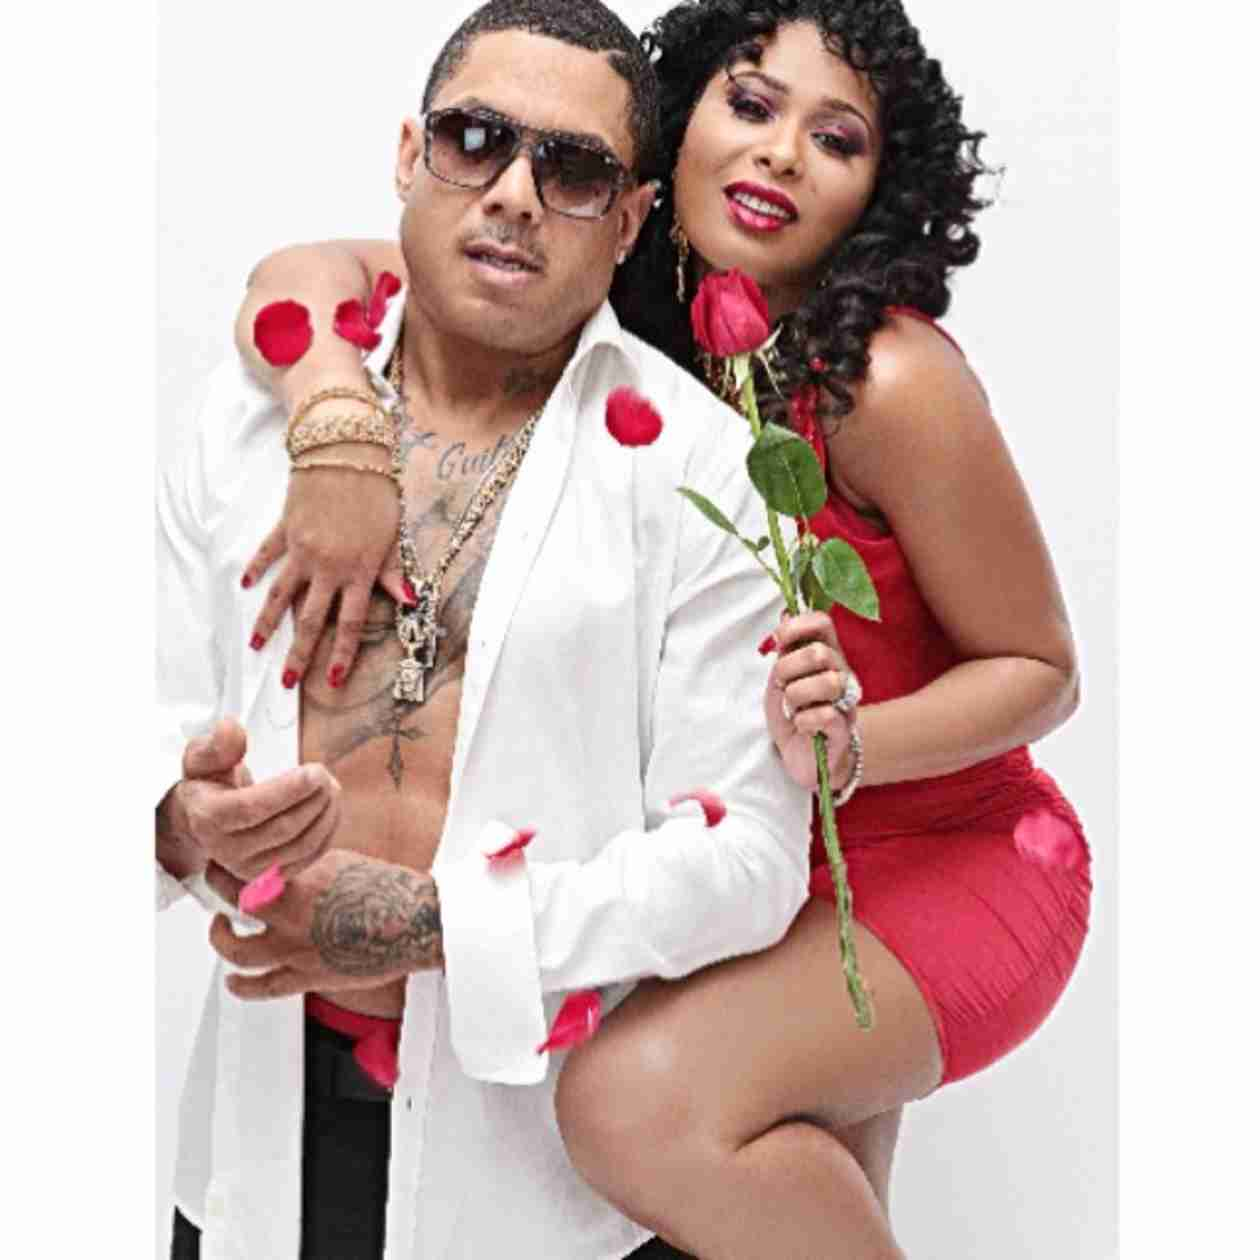 Benzino Tattoos Fiancée's Body Across His Side?! (PHOTOS)